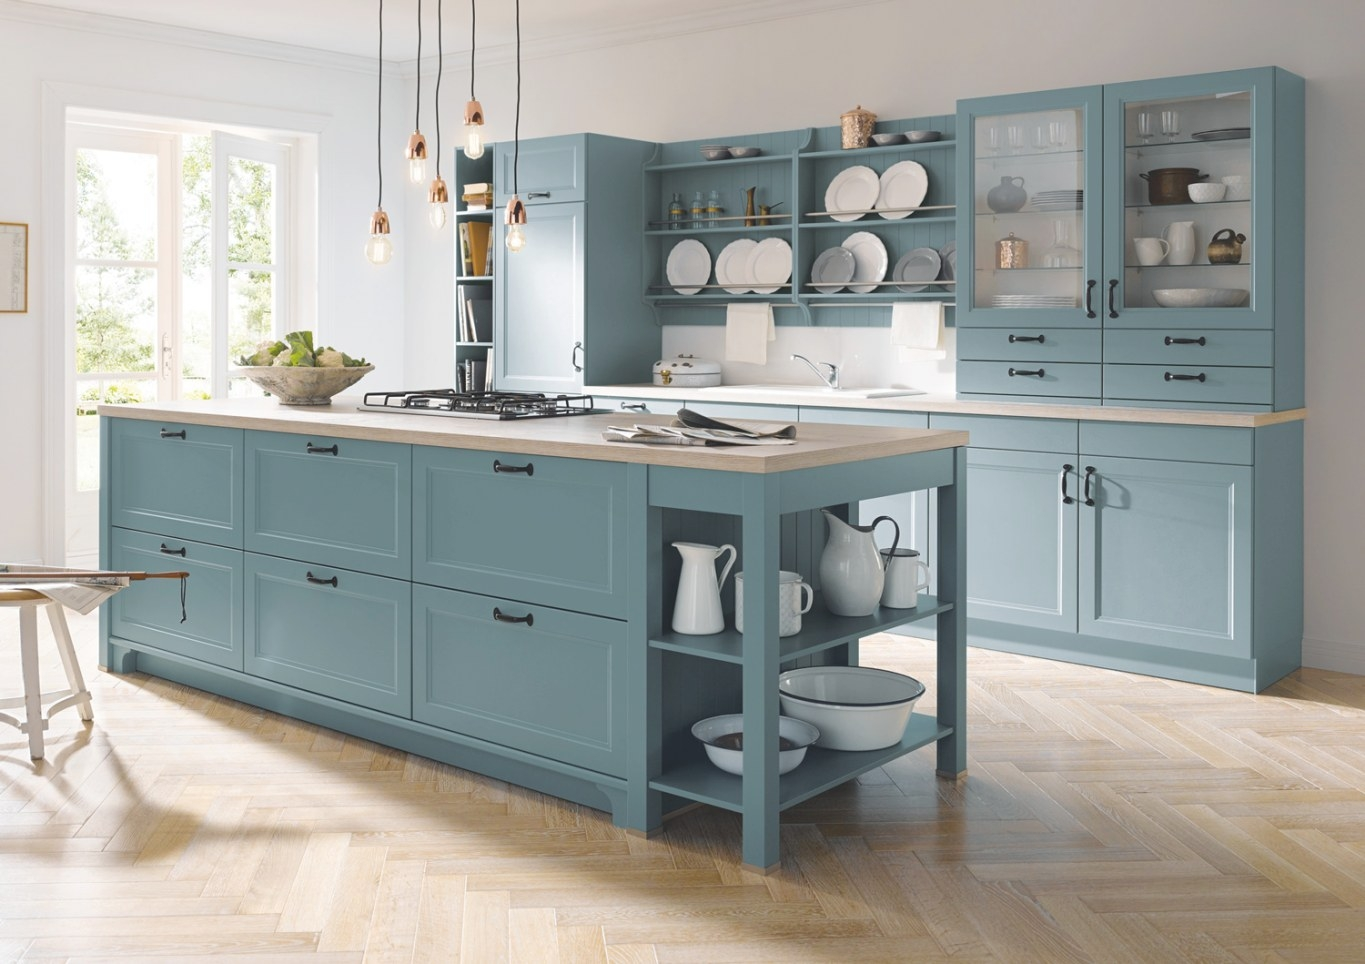 Contur® 57.100 Grey Blue Satin Lacquer Kitchen | Markus pertaining to Blue And Grey Kitchen